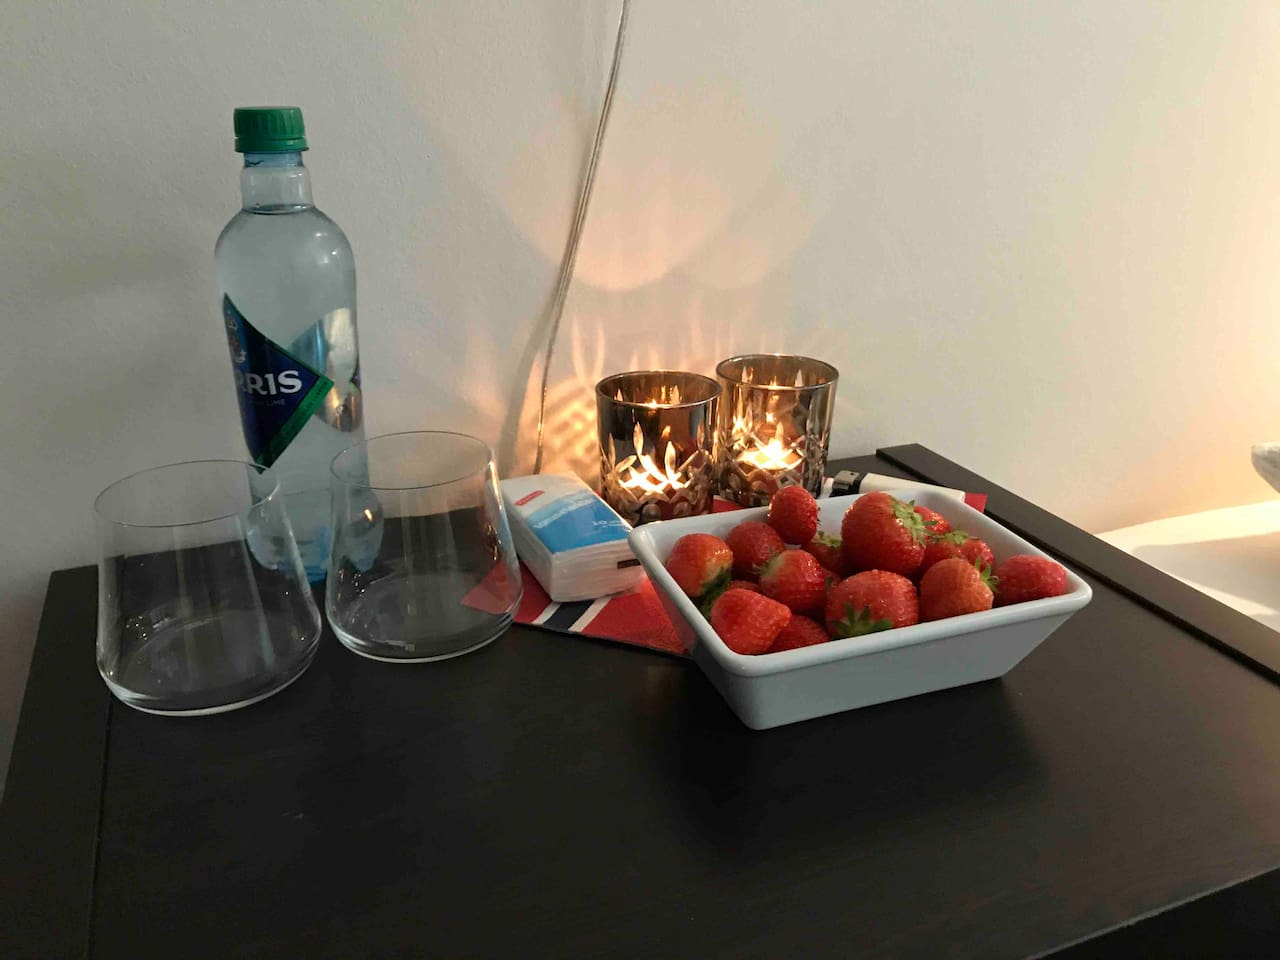 Mineral water and some fresh fruit will always welcome you into your home away from home...